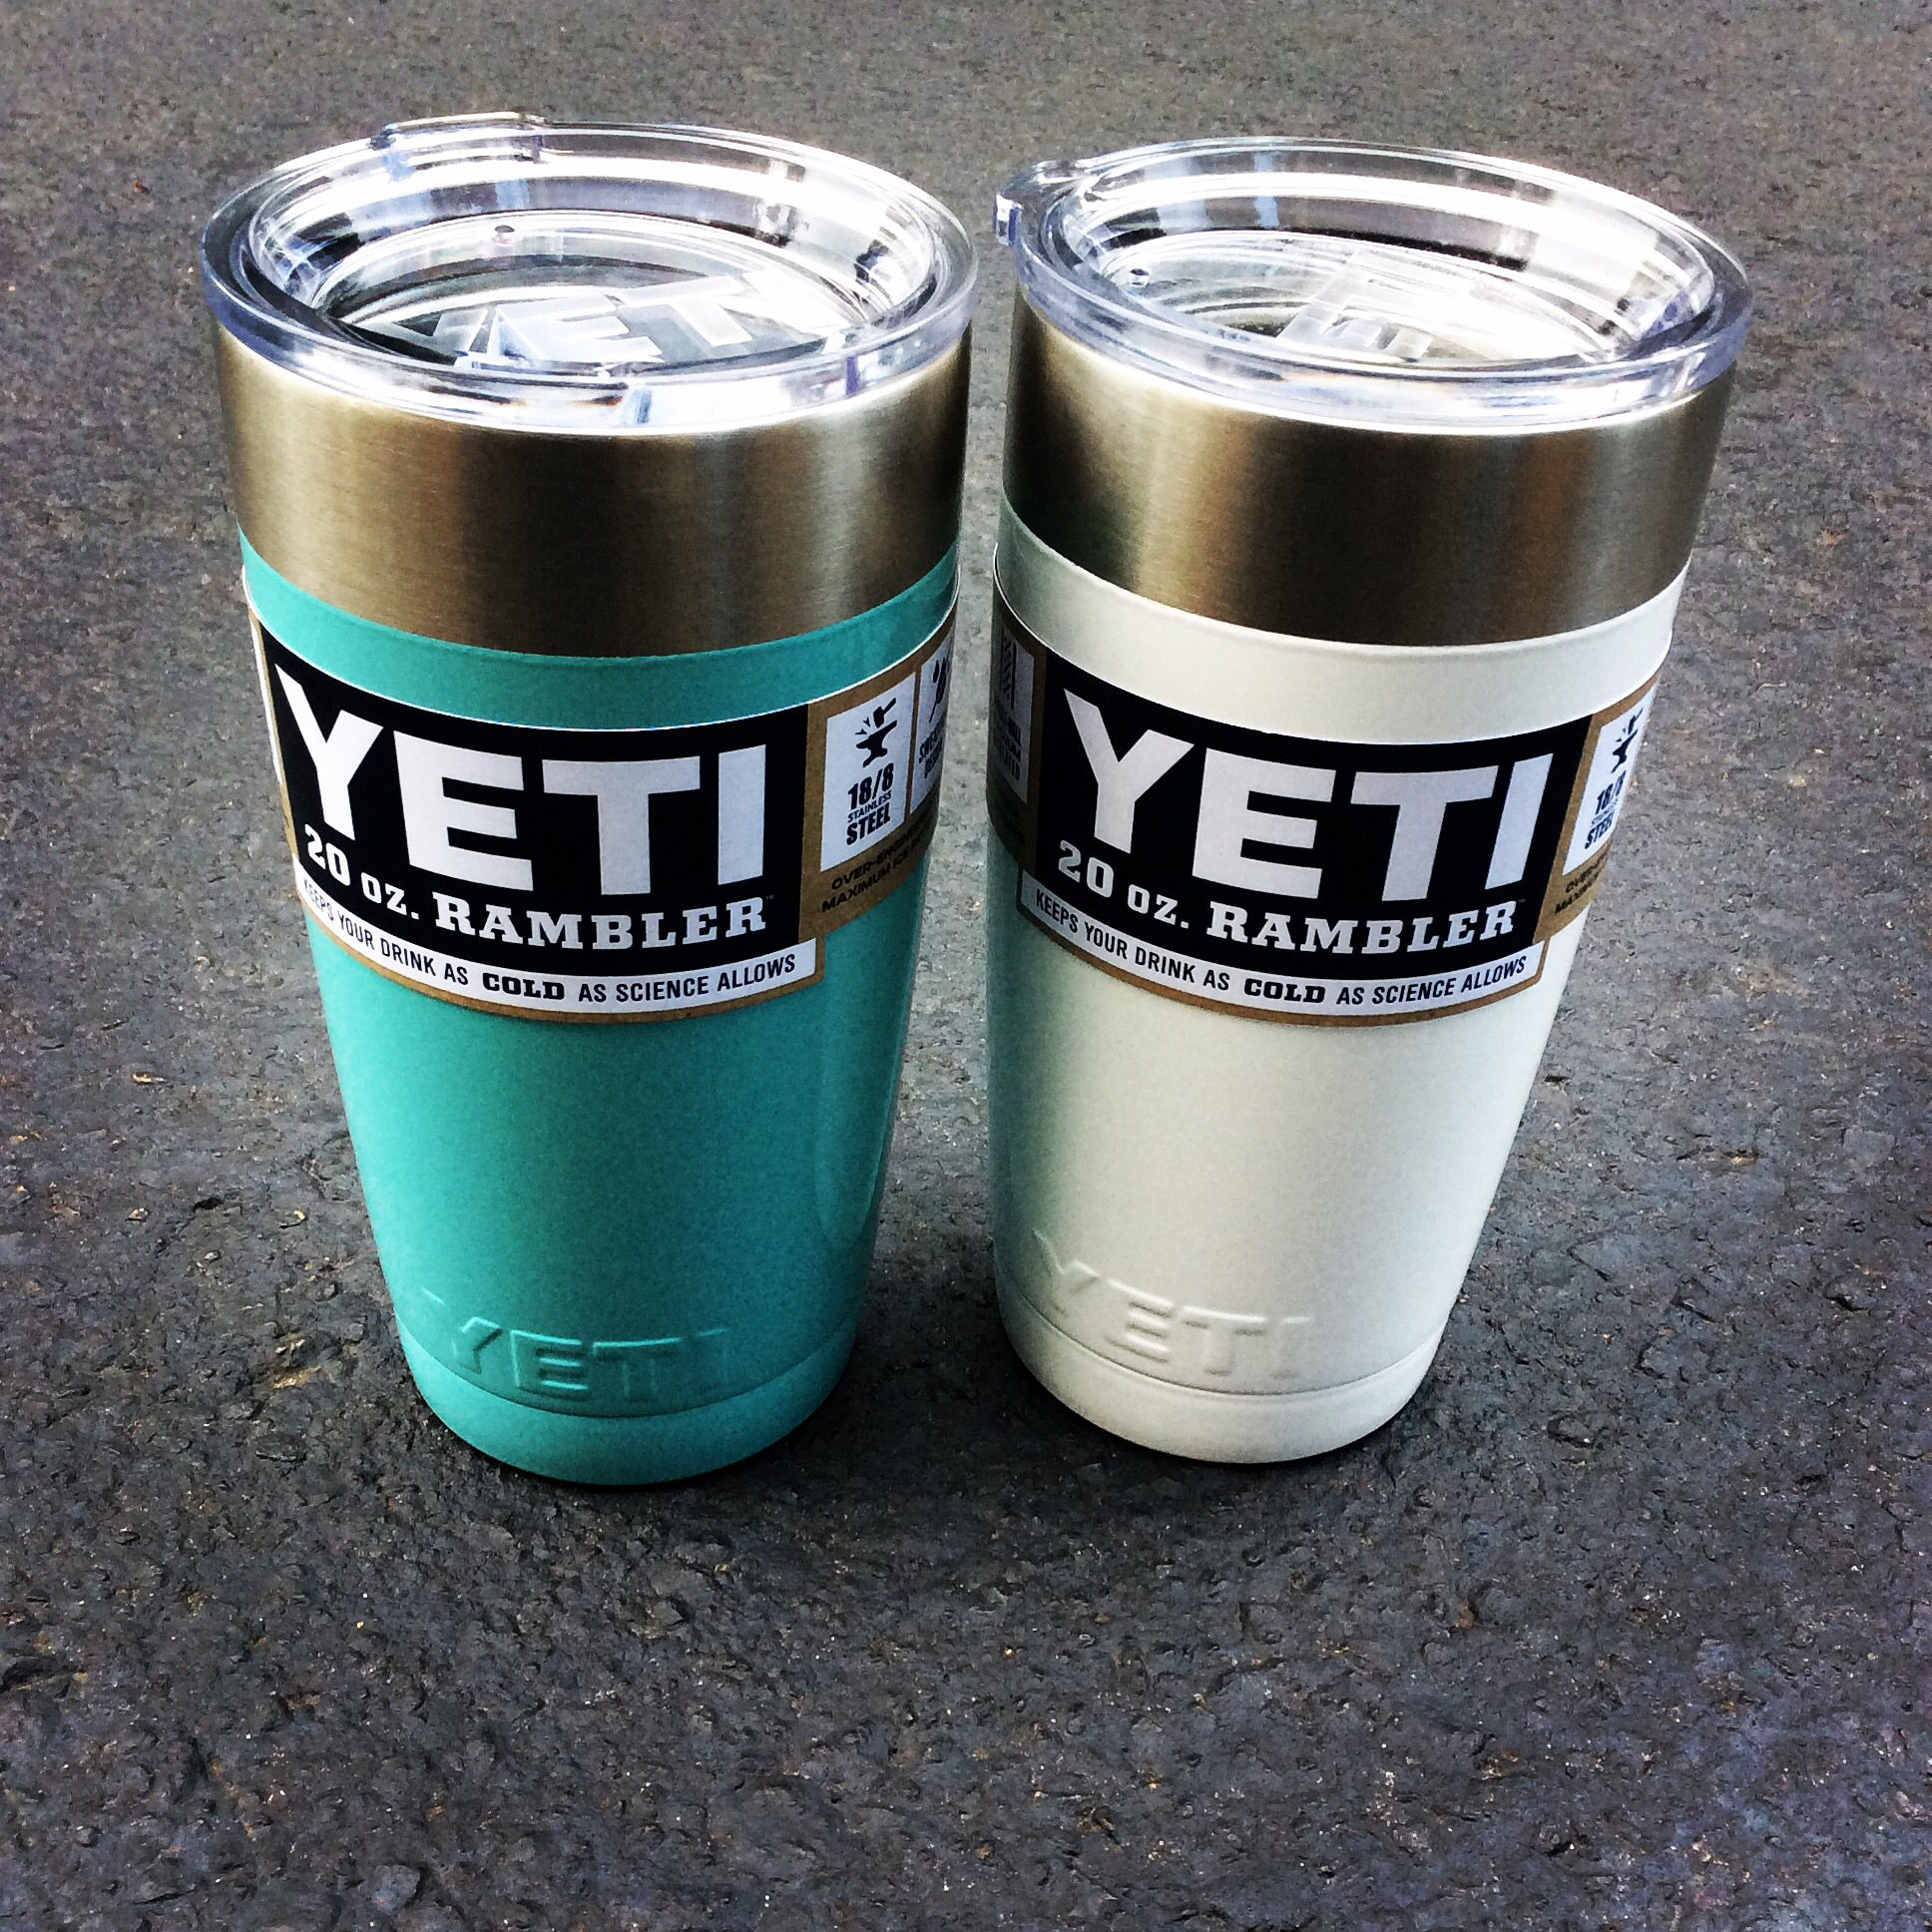 Yeti 20 Oz Rambler With Powder Coating The Shoe Box In